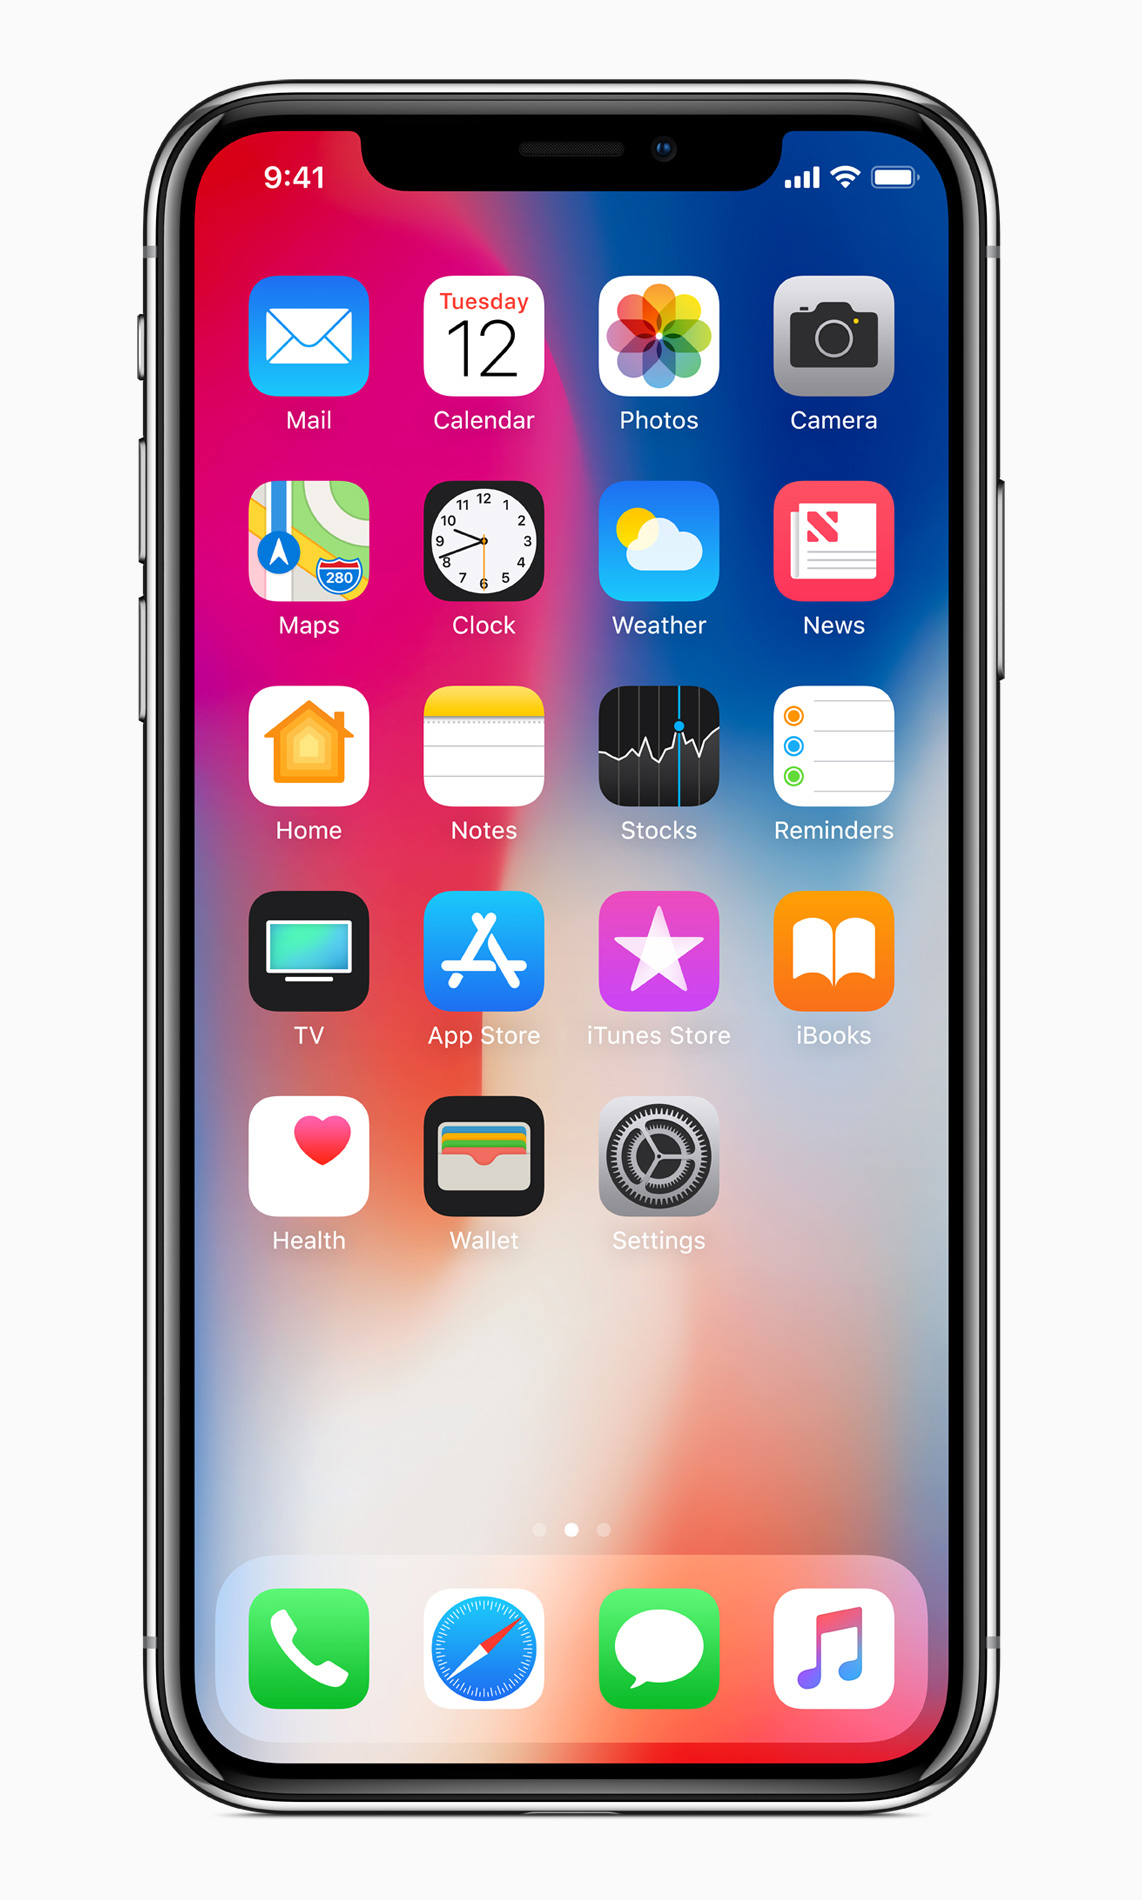 iPhone X iphone 8 uus iphone new iphone apple mobipunkt apple ipad iPhone 8 Plus